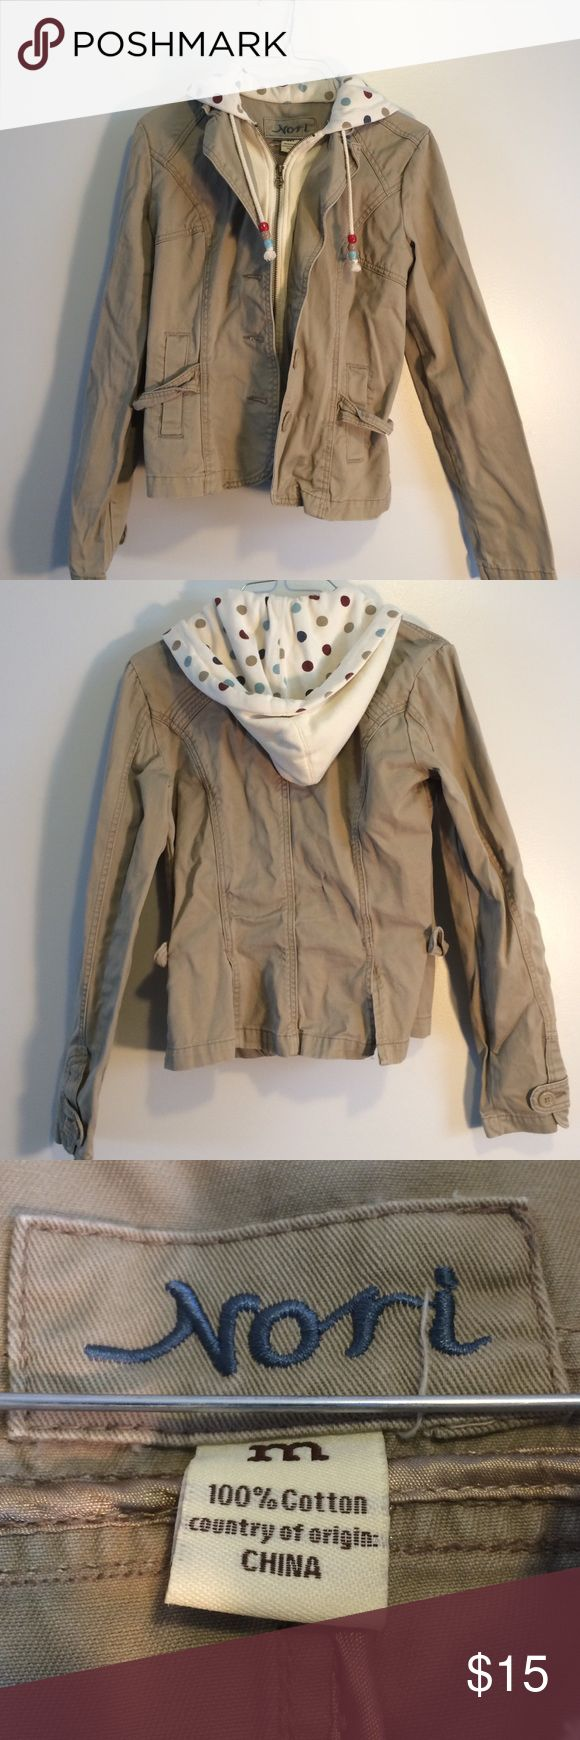 Khaki colored jacket with poke a dot hood size m Khaki color zip and button up jacket with poke a dot hood and beaded draw strings for hood. Size medium. There was a small hole on the back but it has been professionally mended and is not noticeable see last picture. Jackets & Coats